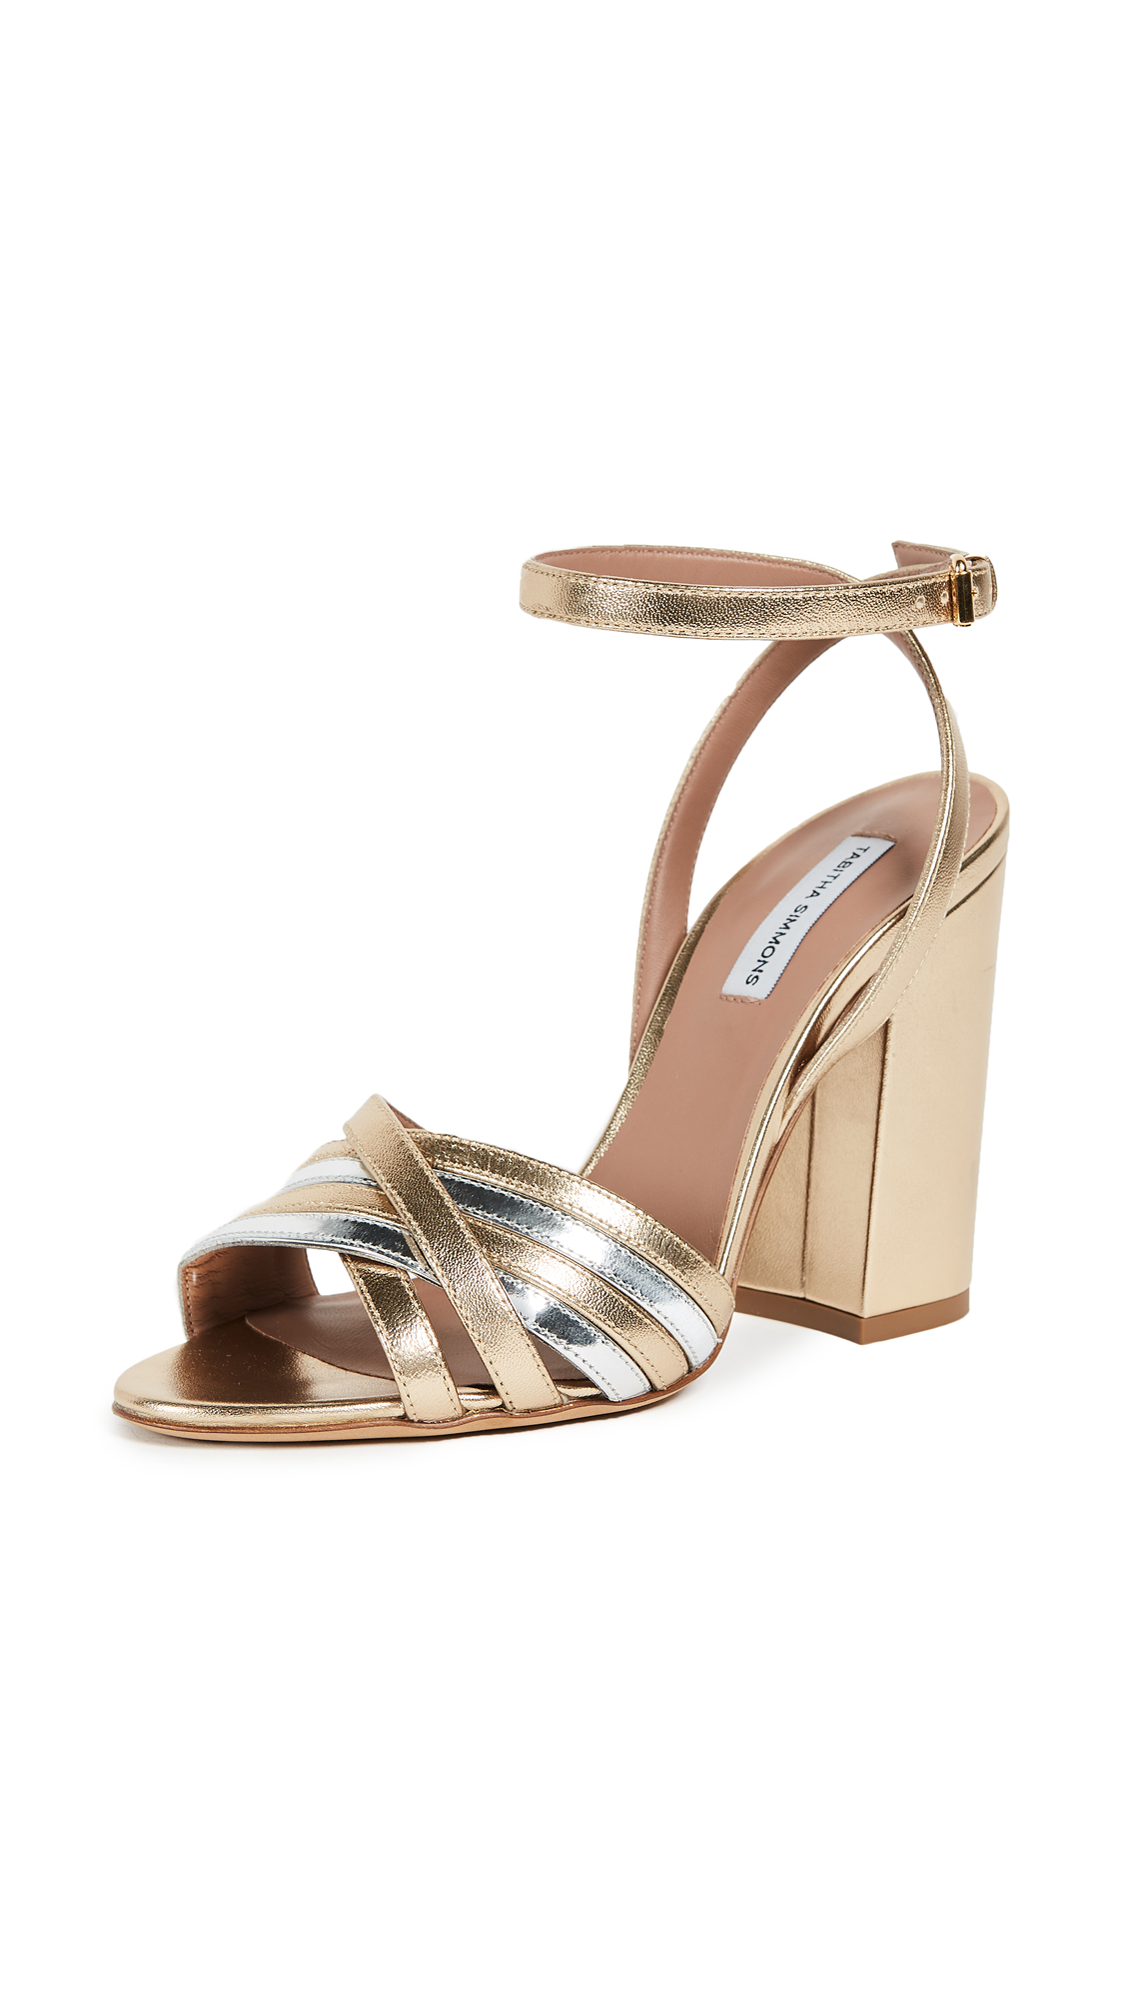 Tabitha Simmons Toni Metallic Sandal Pumps